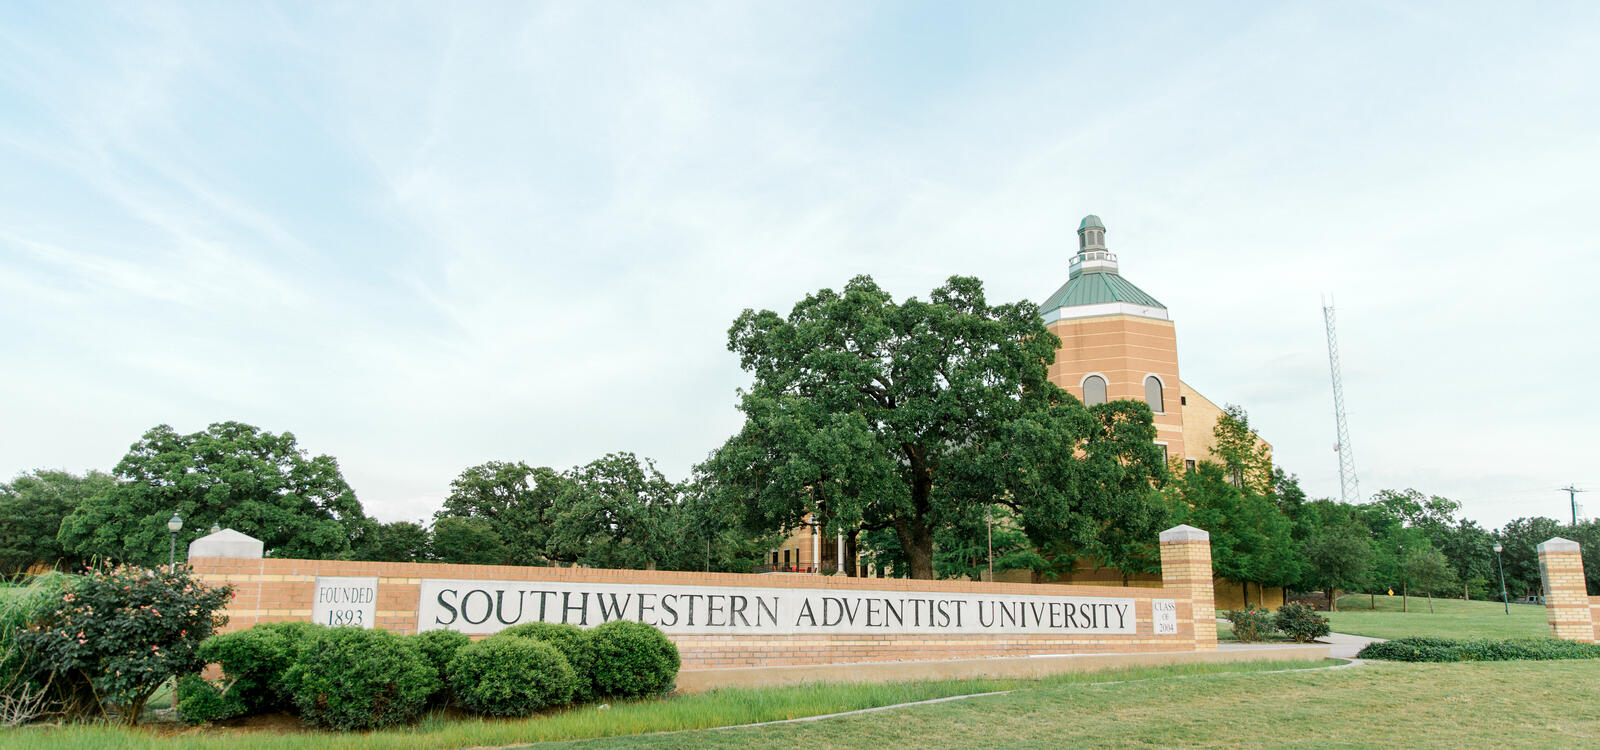 """Campus sign made of bricks that reads """"Southwestern Adventist University"""" with the top of Pechero Hall showing behind trees"""